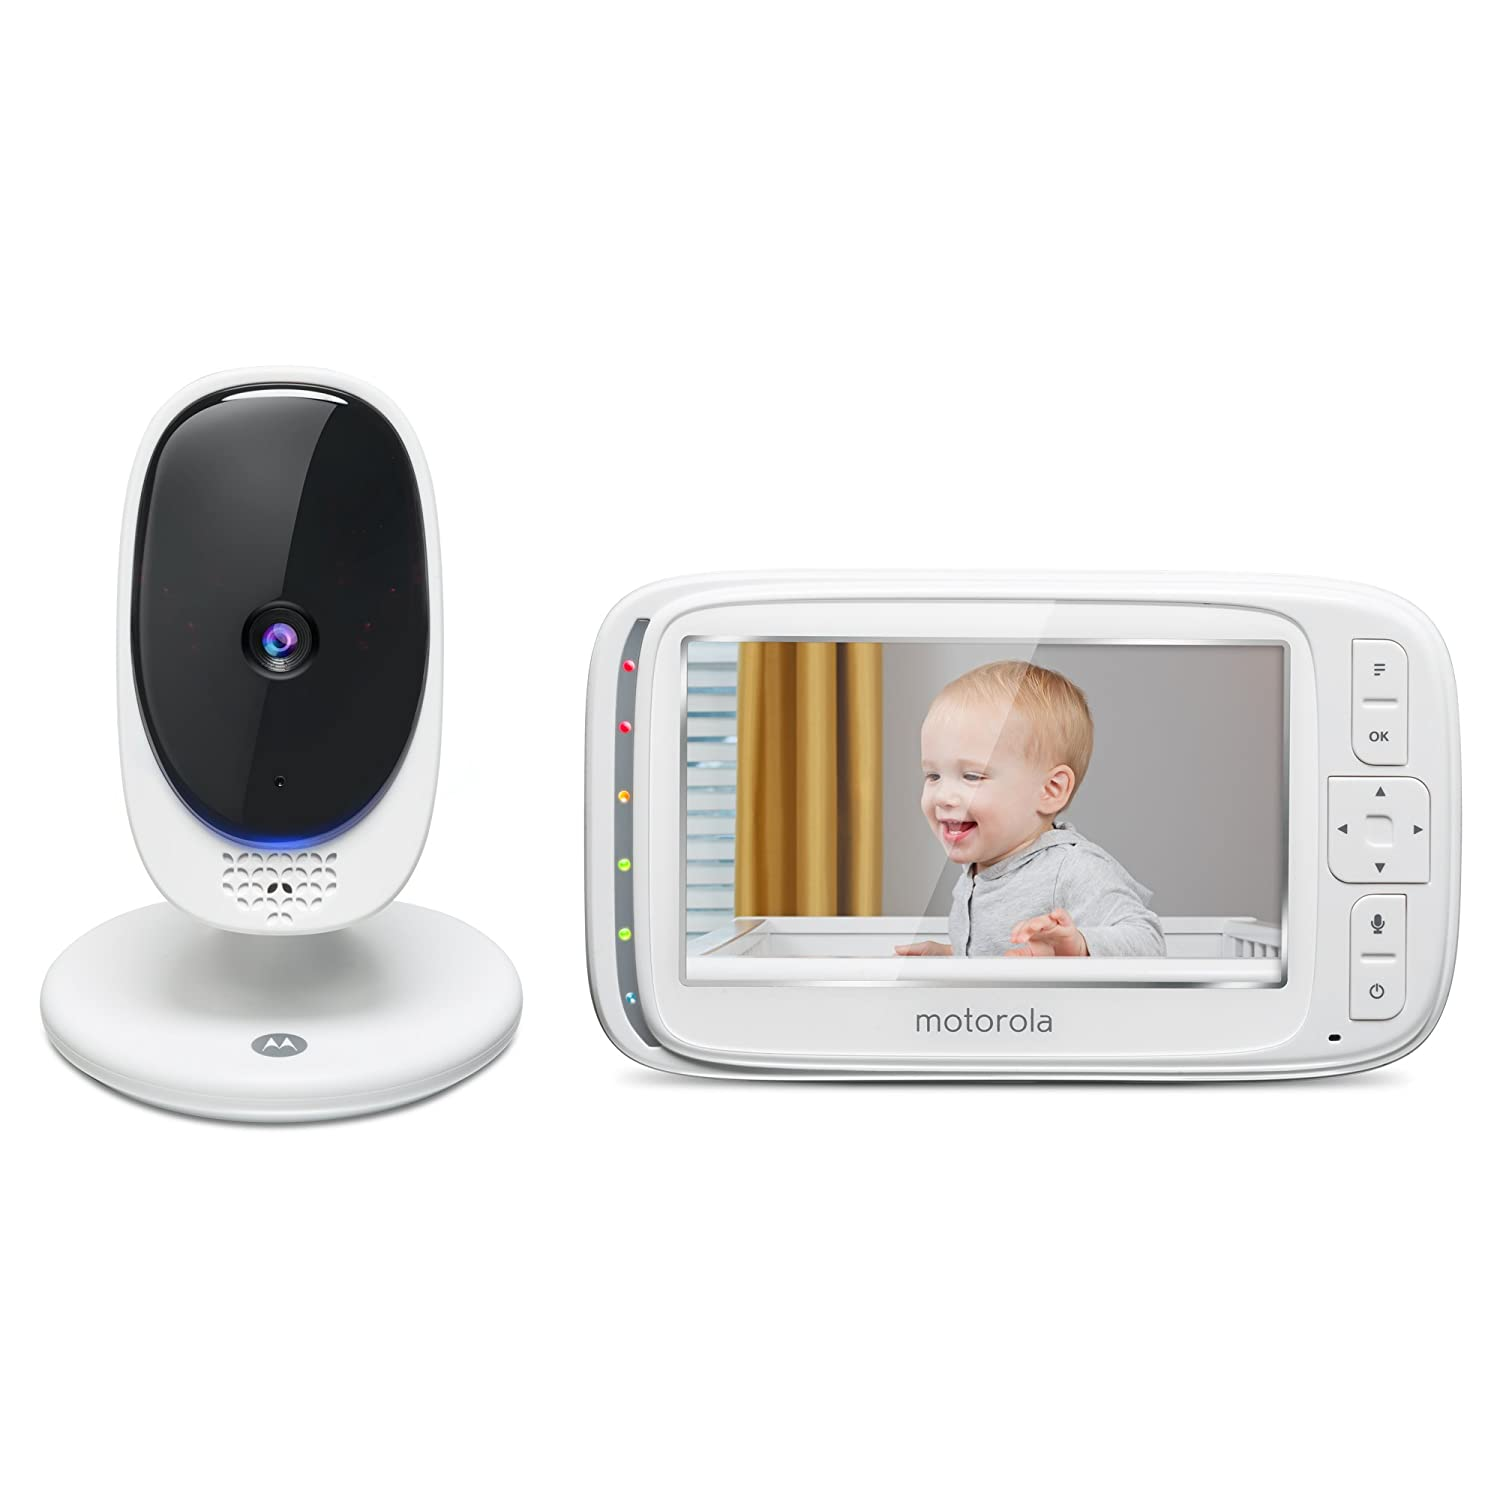 Motorola Comfort 50-2 Digital Video Audio Baby Monitor with 5-Inch Color Screen and 2 Cameras Exclusive Group COMFORT50-2